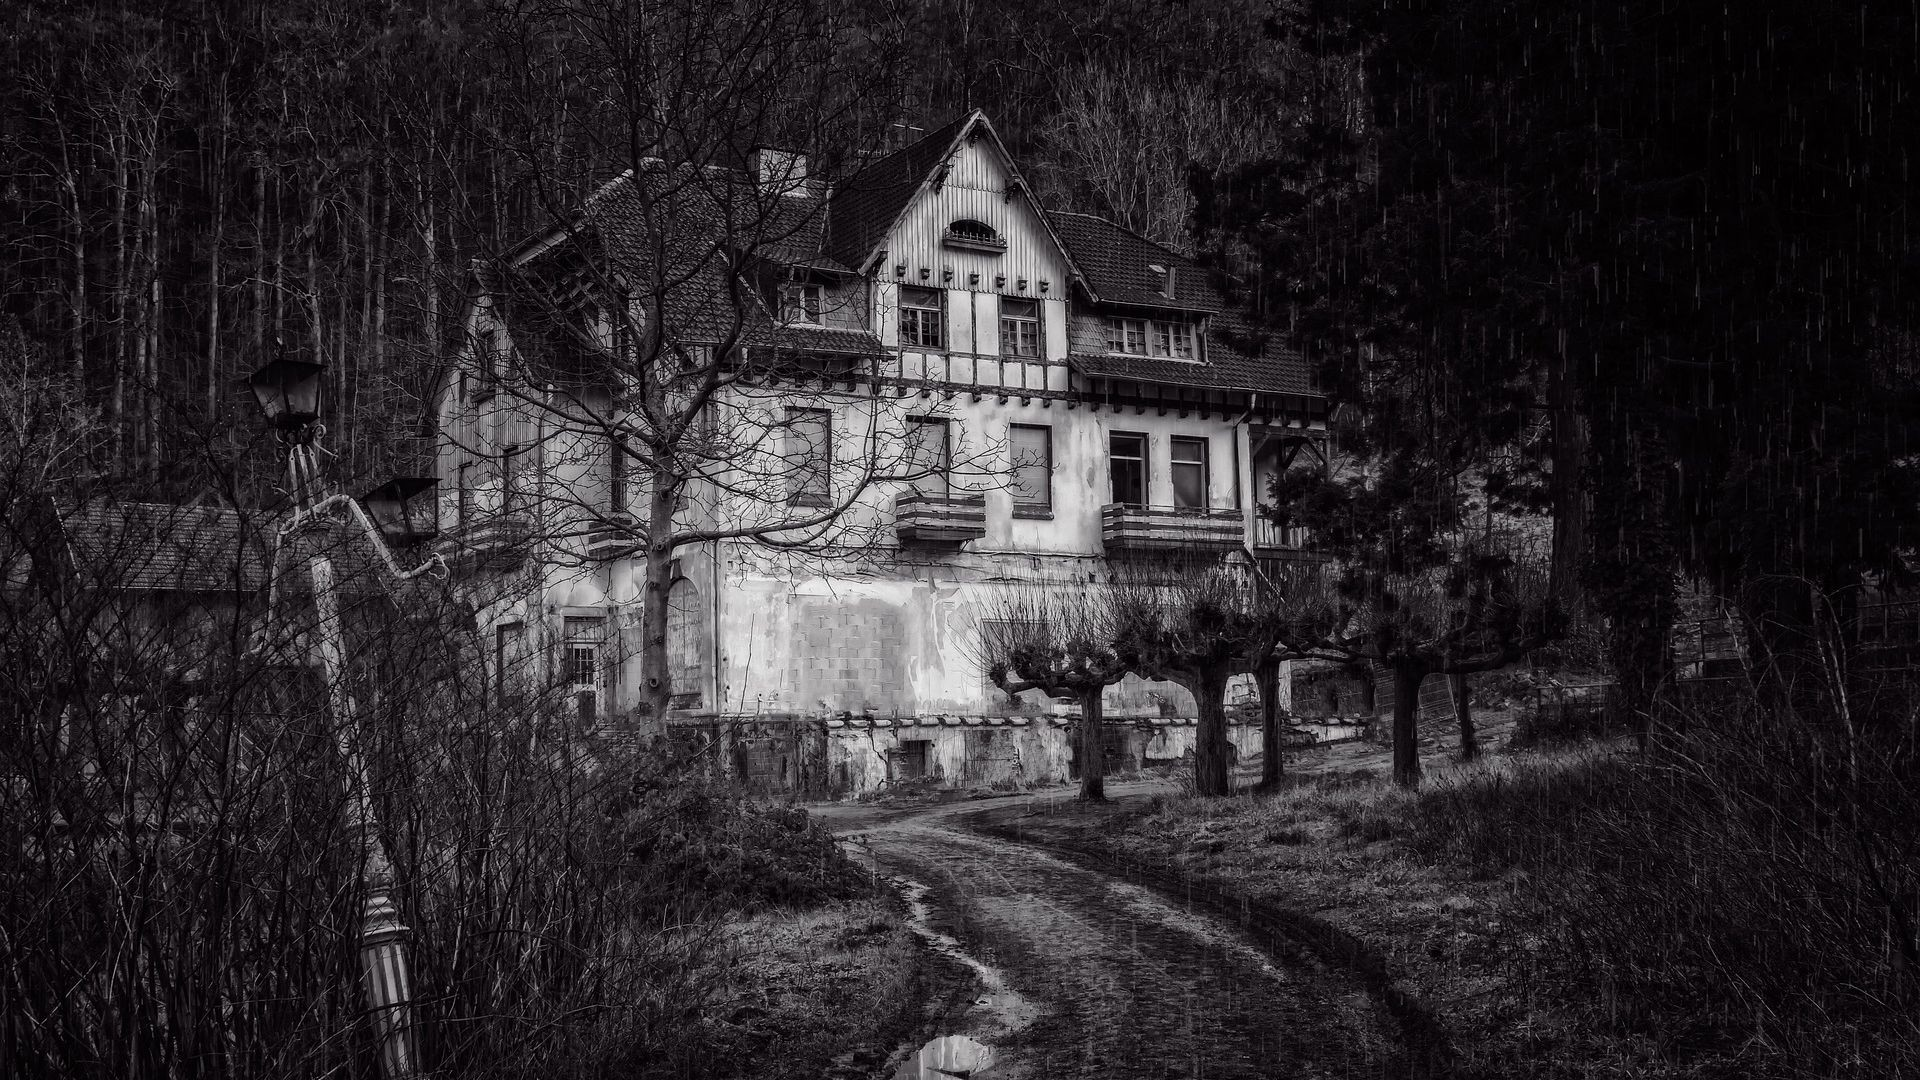 1920x1080 Black and White Haunted House HD Wallpaper